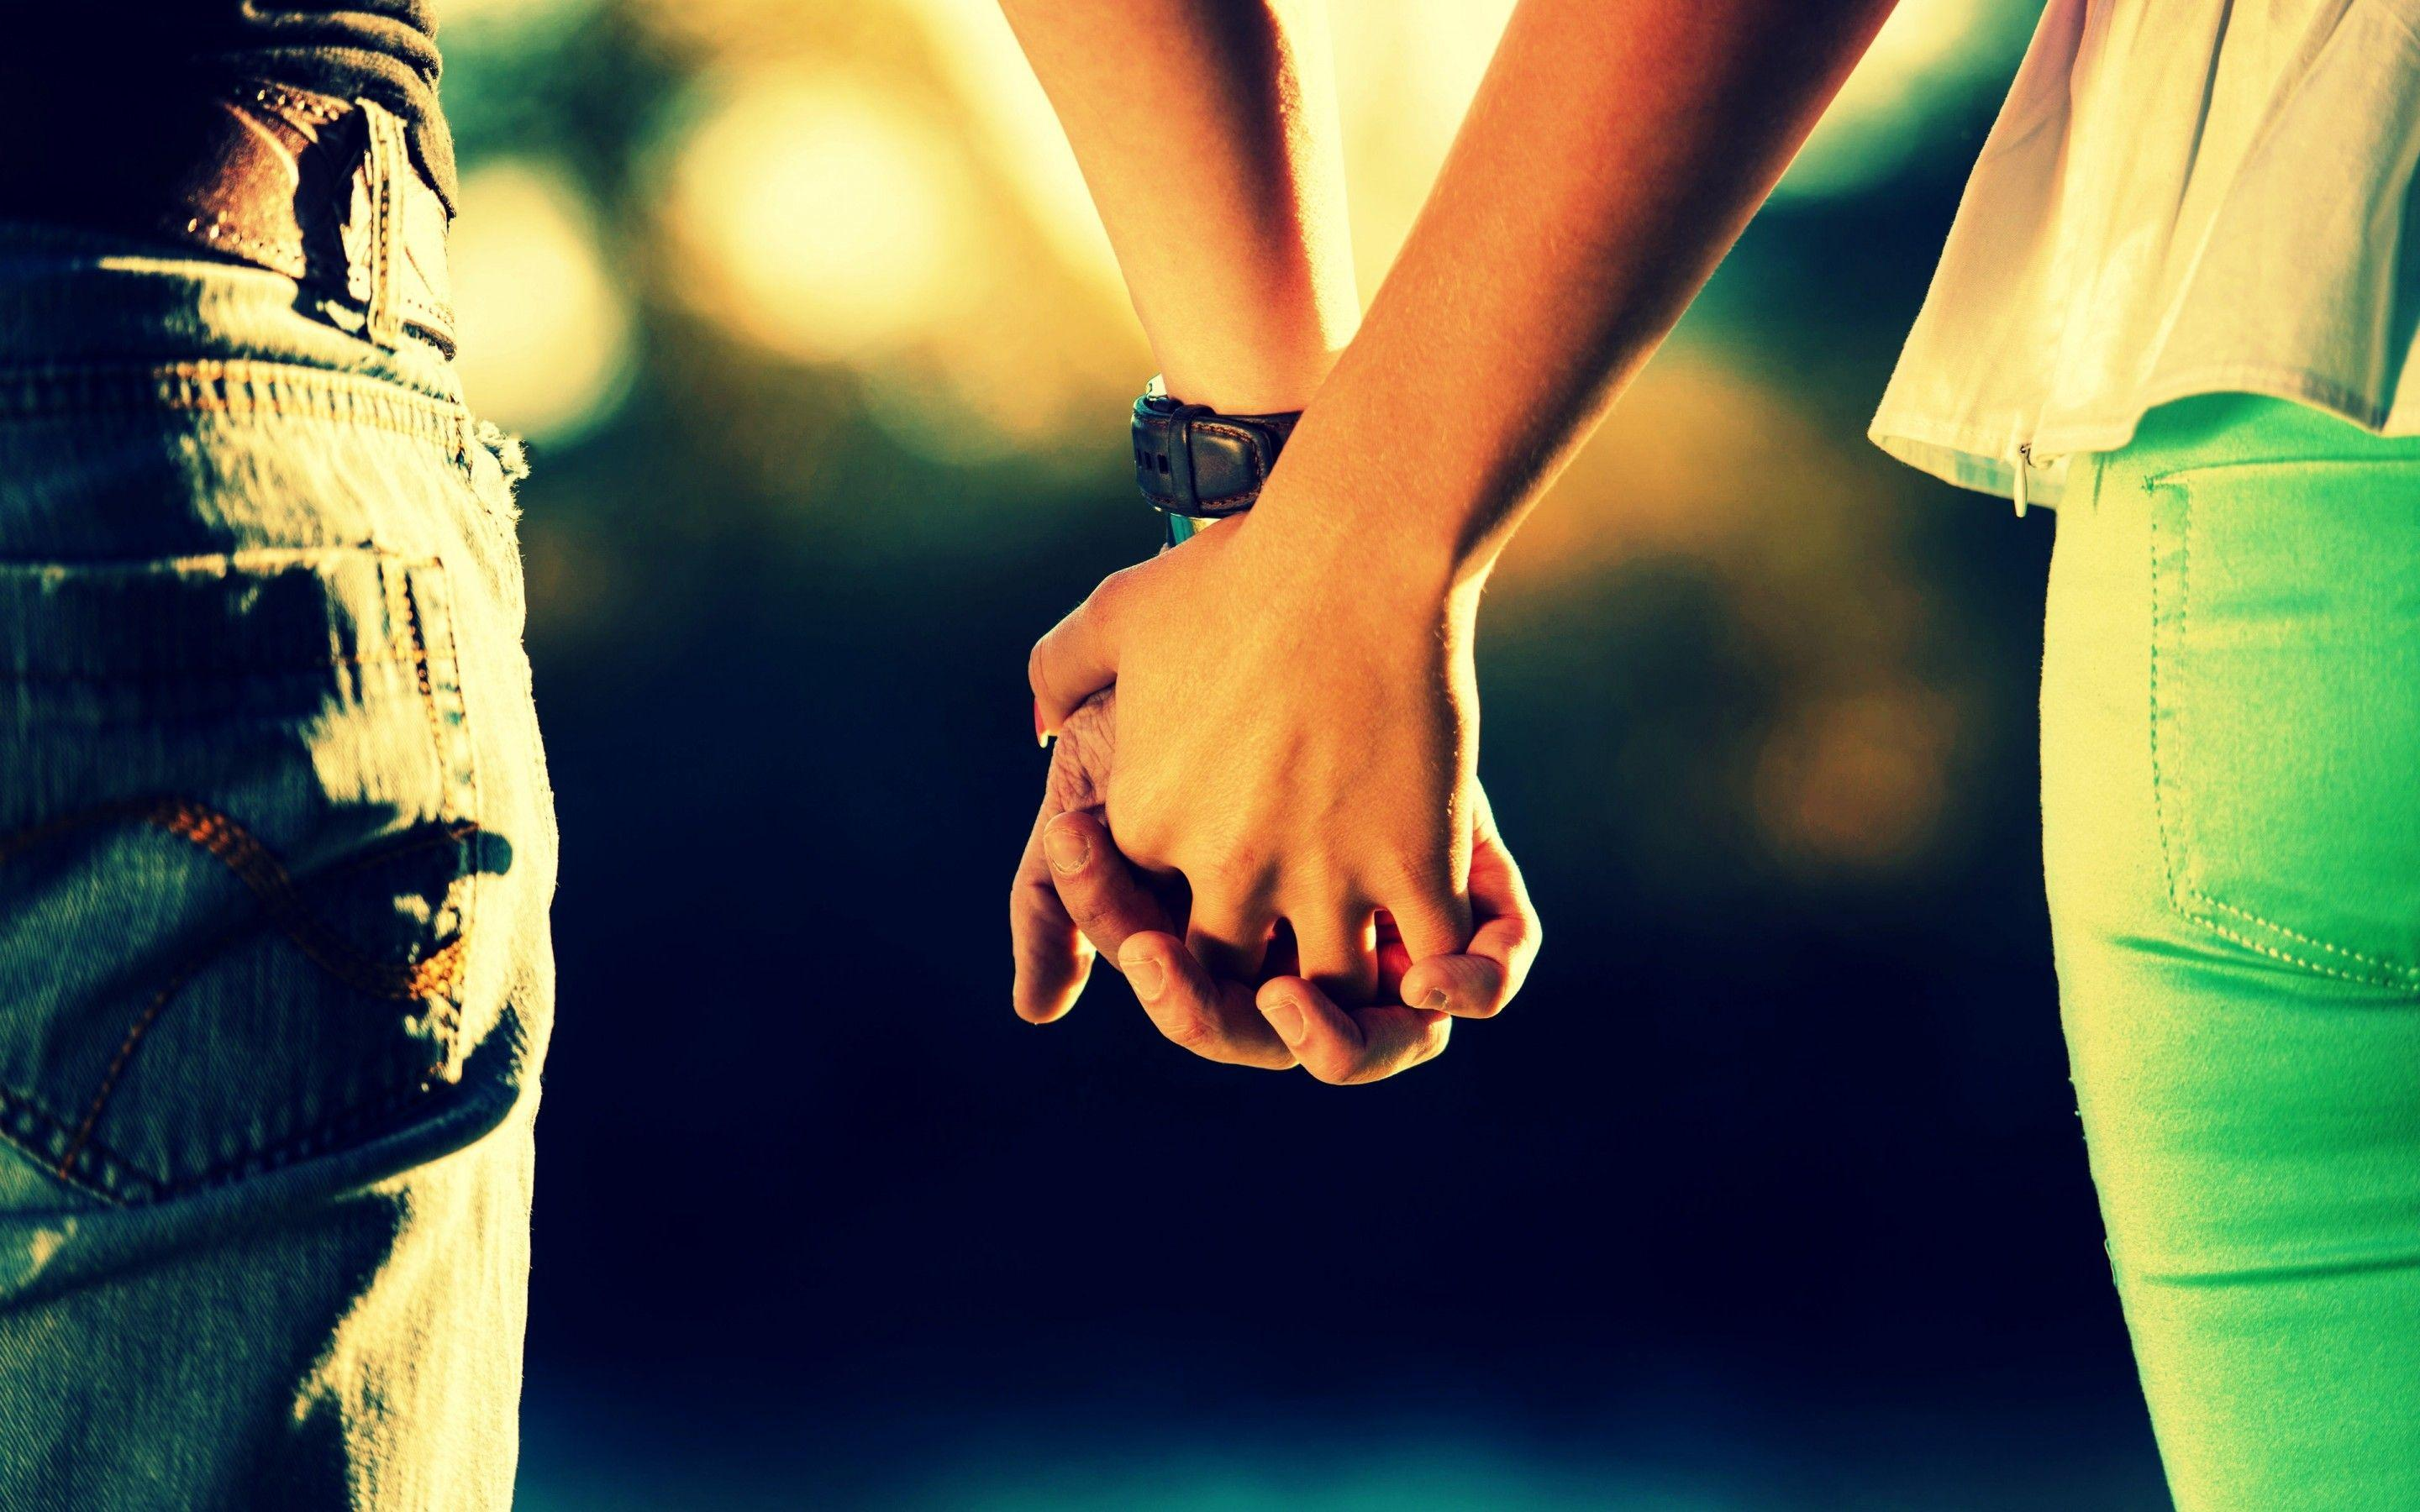 Hd wallpapers boy and girl